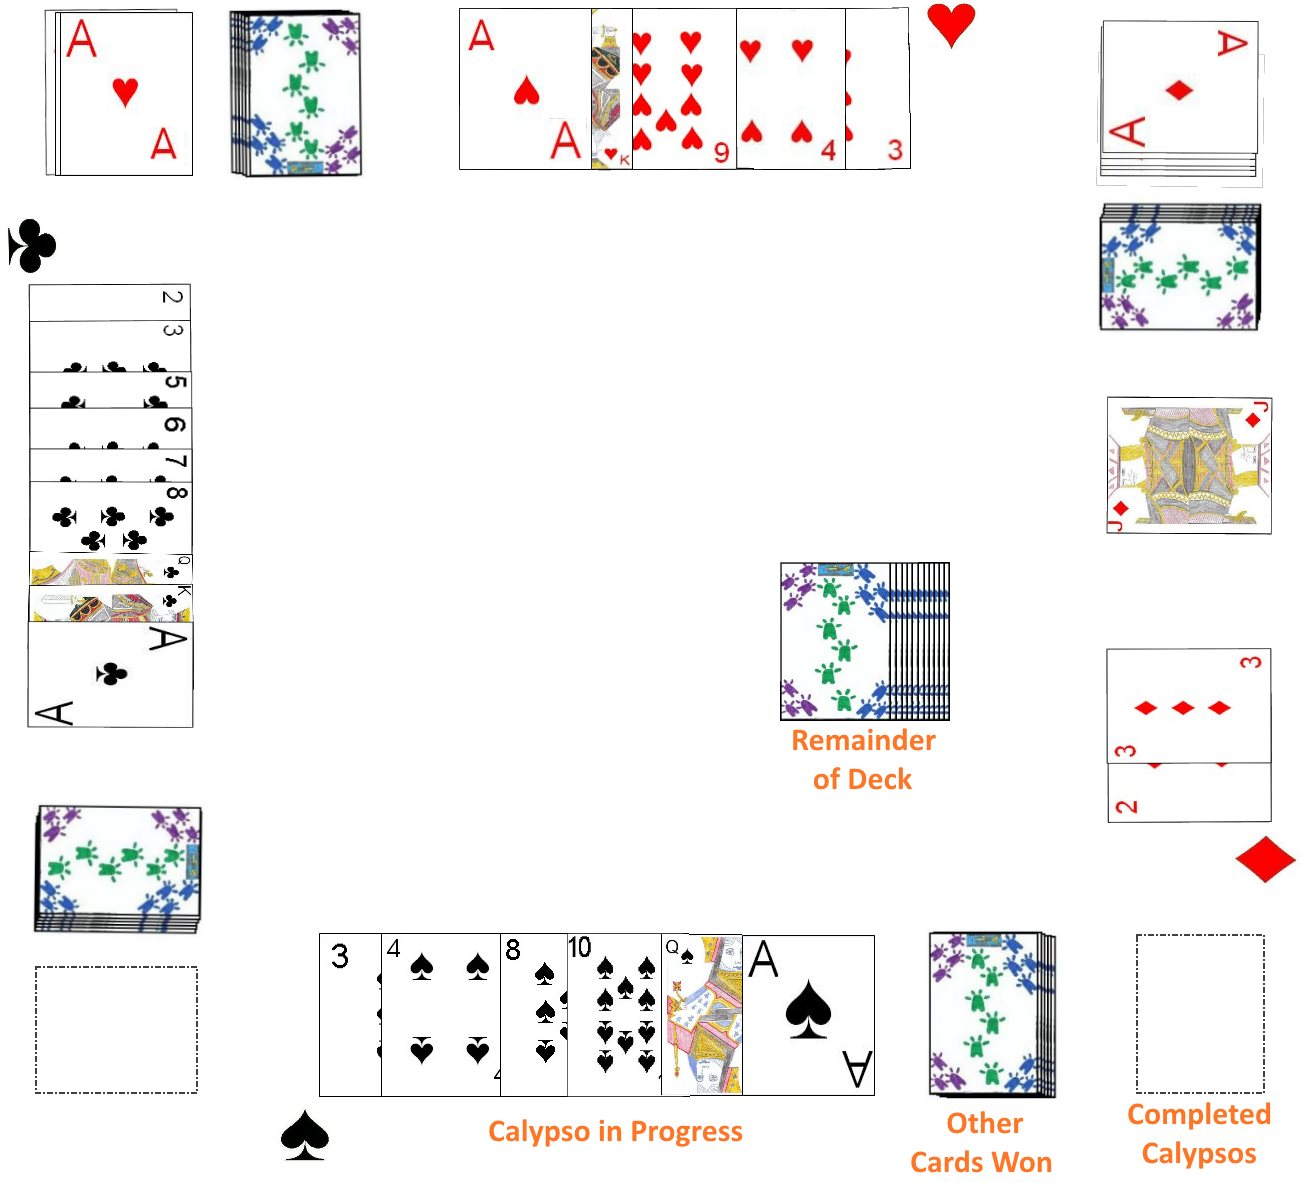 Sample layout for a game of Calypso in progress